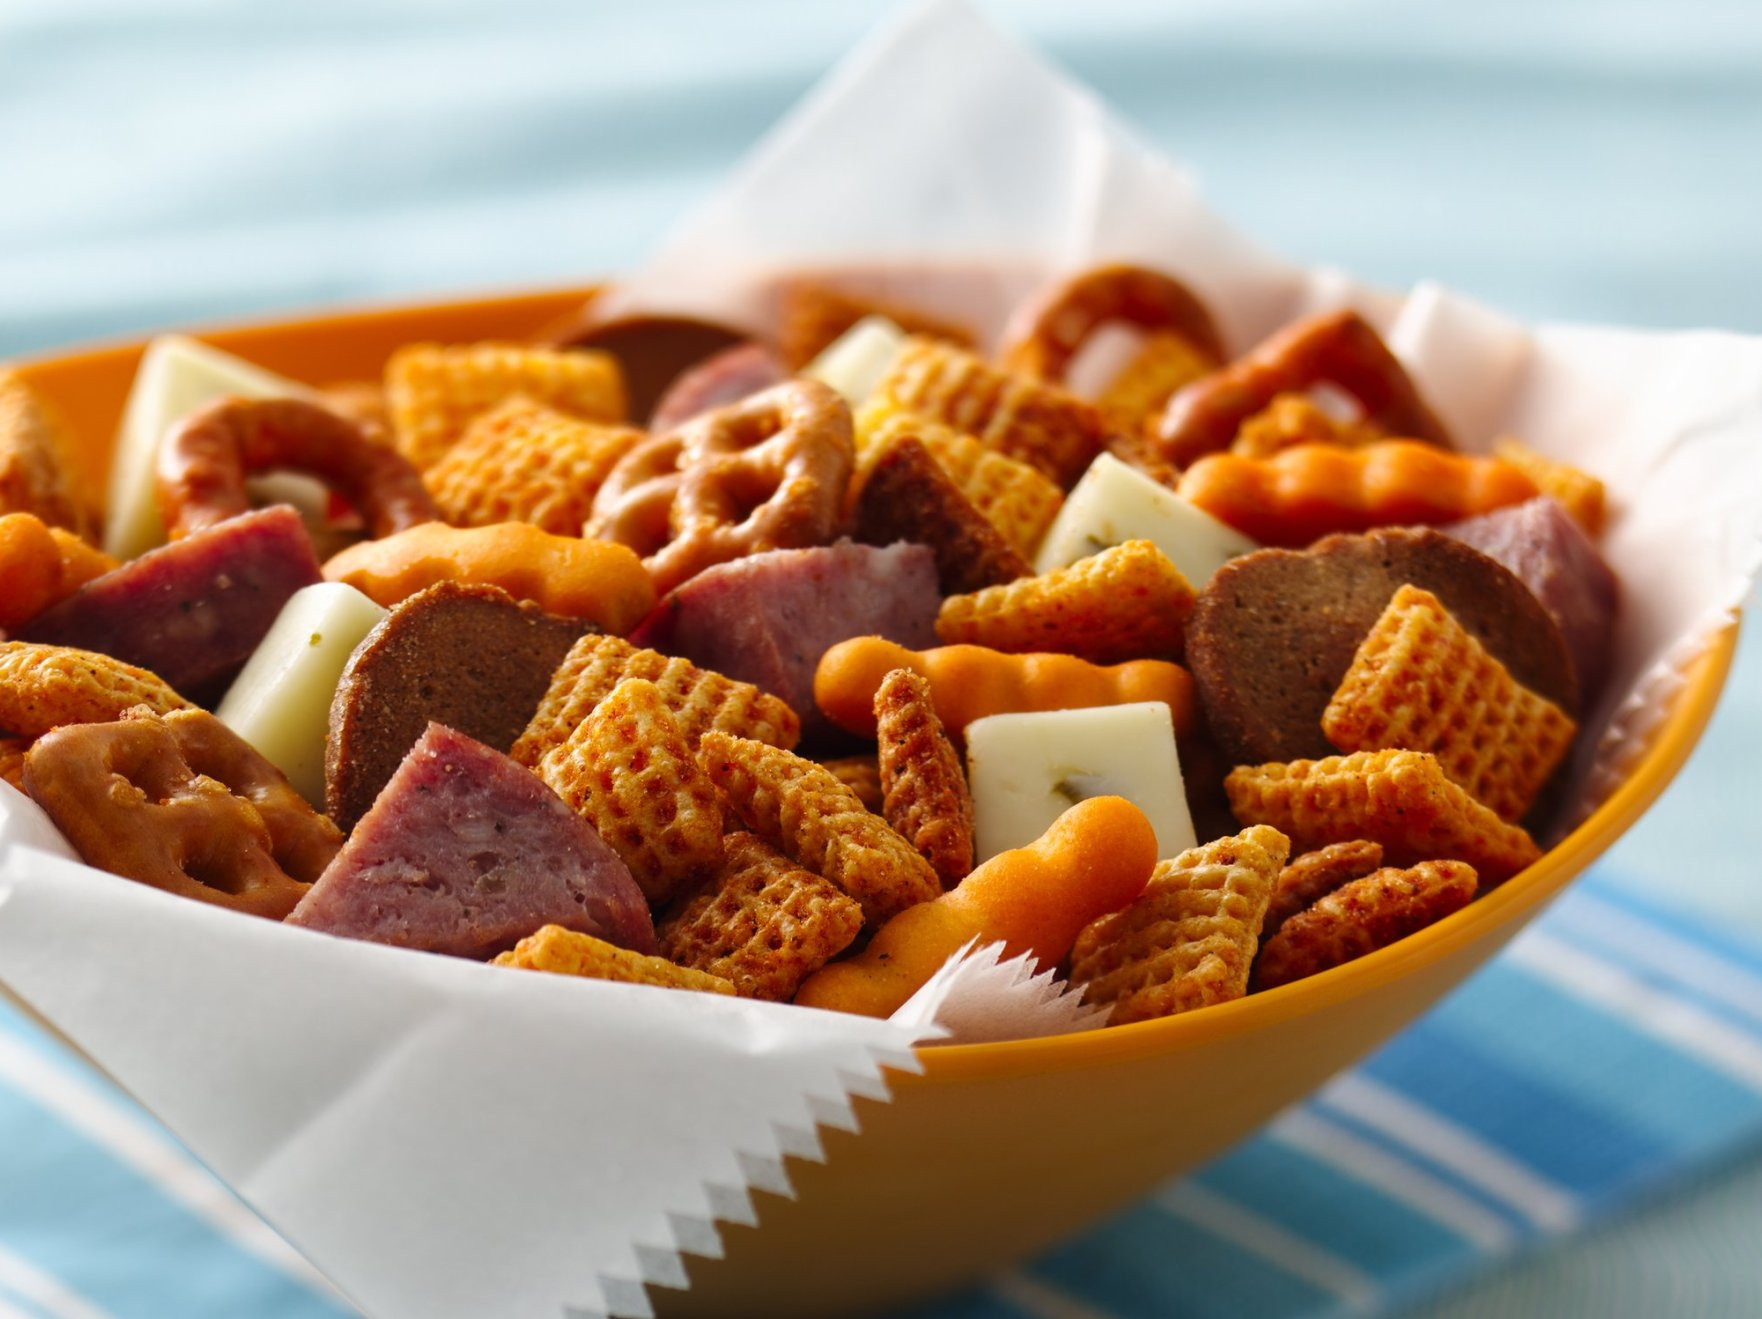 Snacks and Cereals